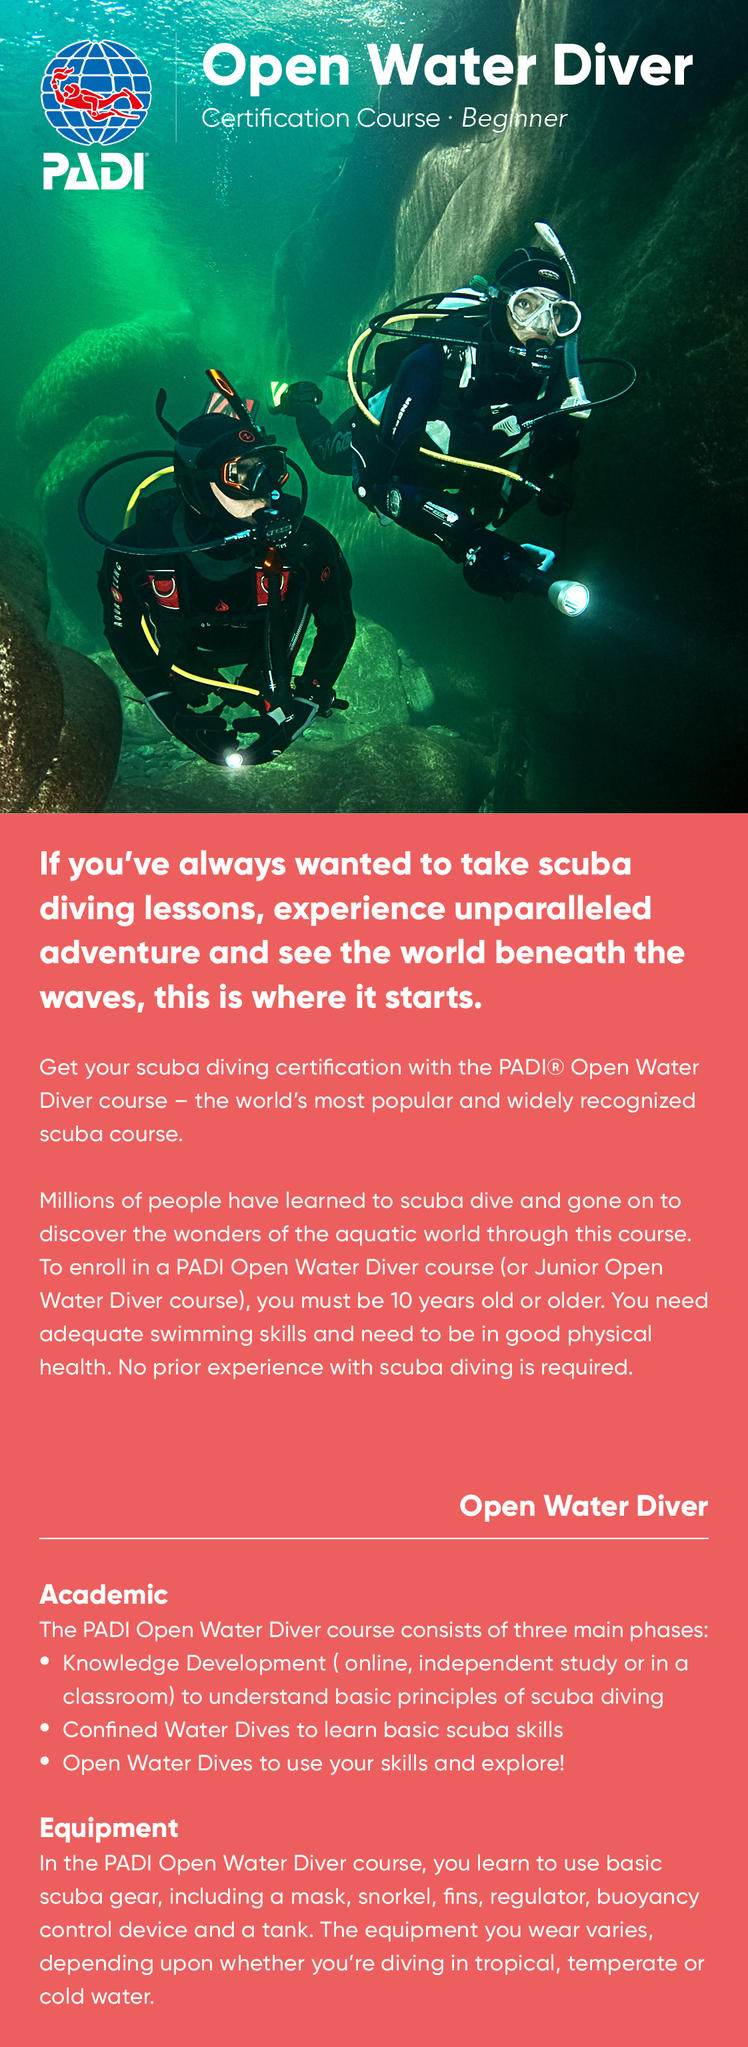 PADI Open Water Diver information